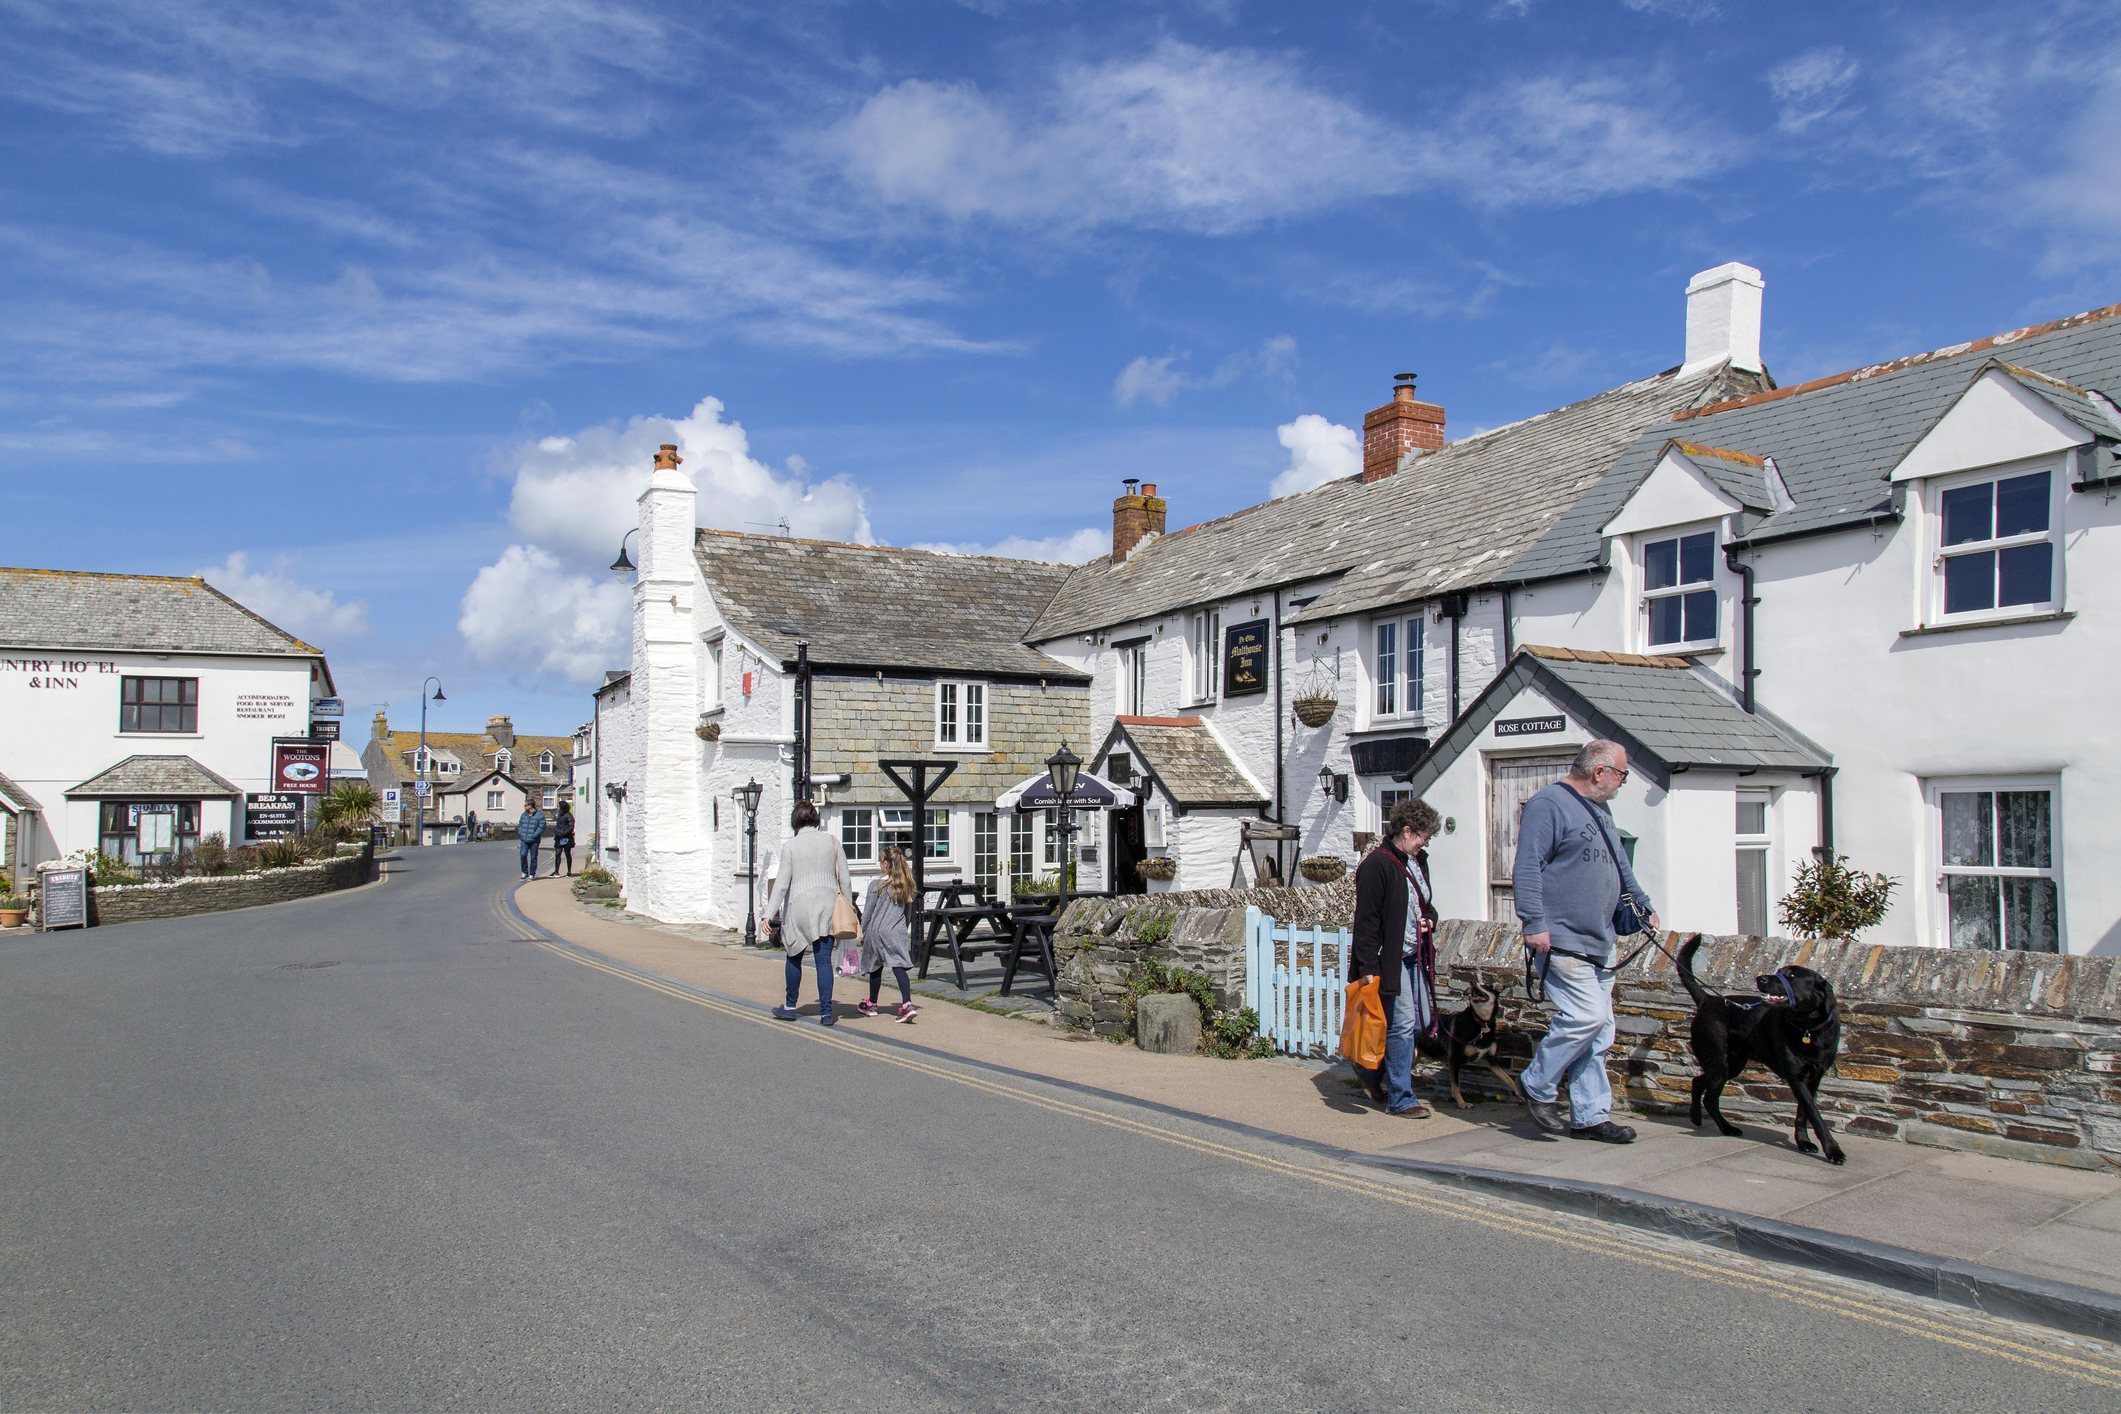 Tintagel, Cornwall, UK: April 14, 2016: Street view of the popular tourist village of Tintagel in Cornwall. A couple are walking their dogs and a mother and daughter are walking away from the camera. A pub is to the right and a Hotel is in the background.